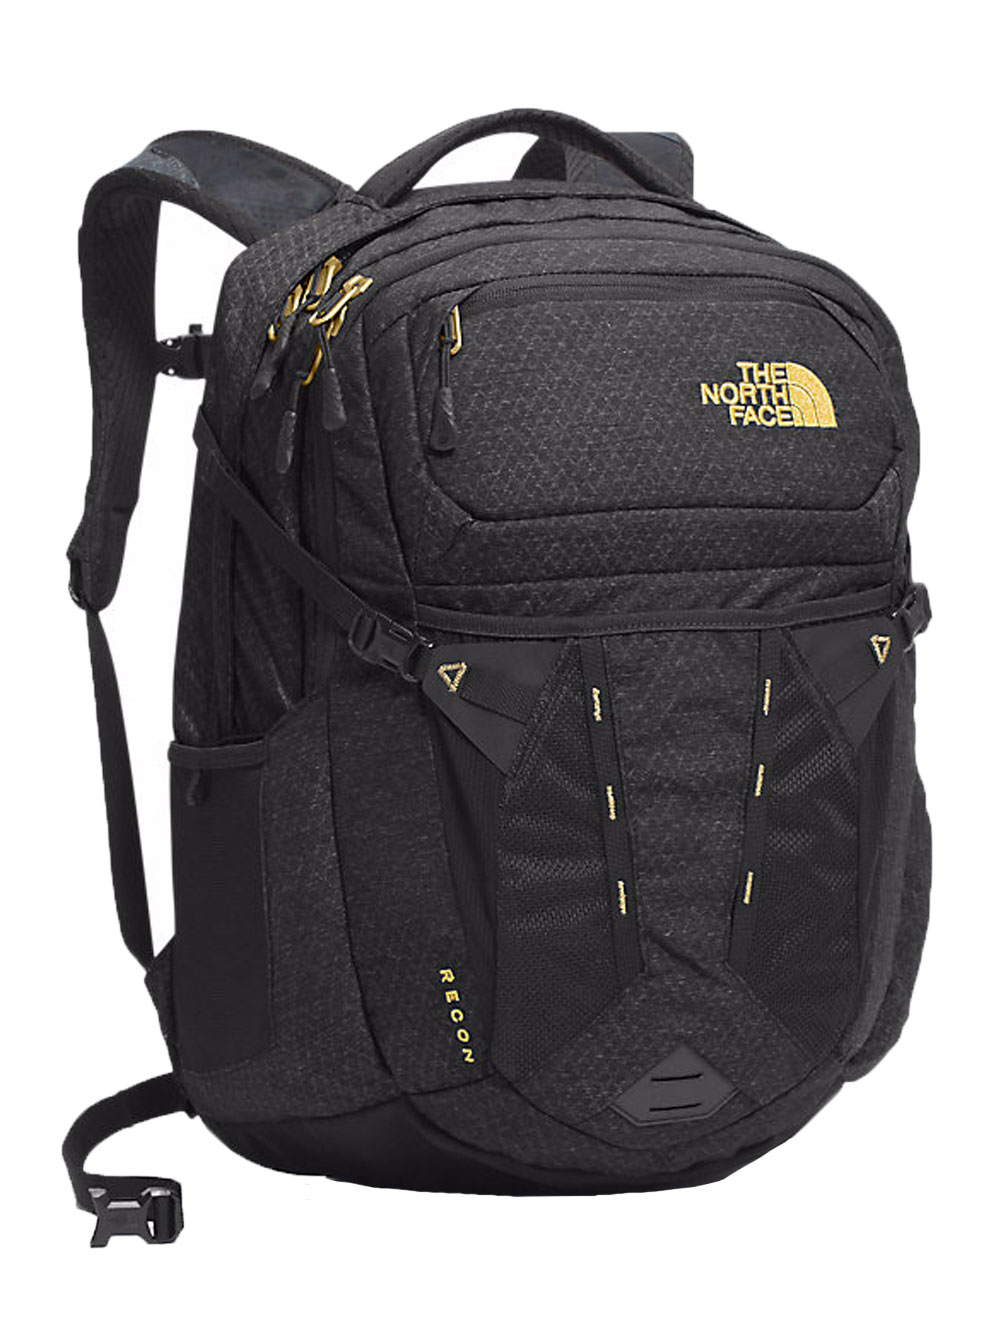 The North Face Recon Backpack - Women's - black/24k gold, one size